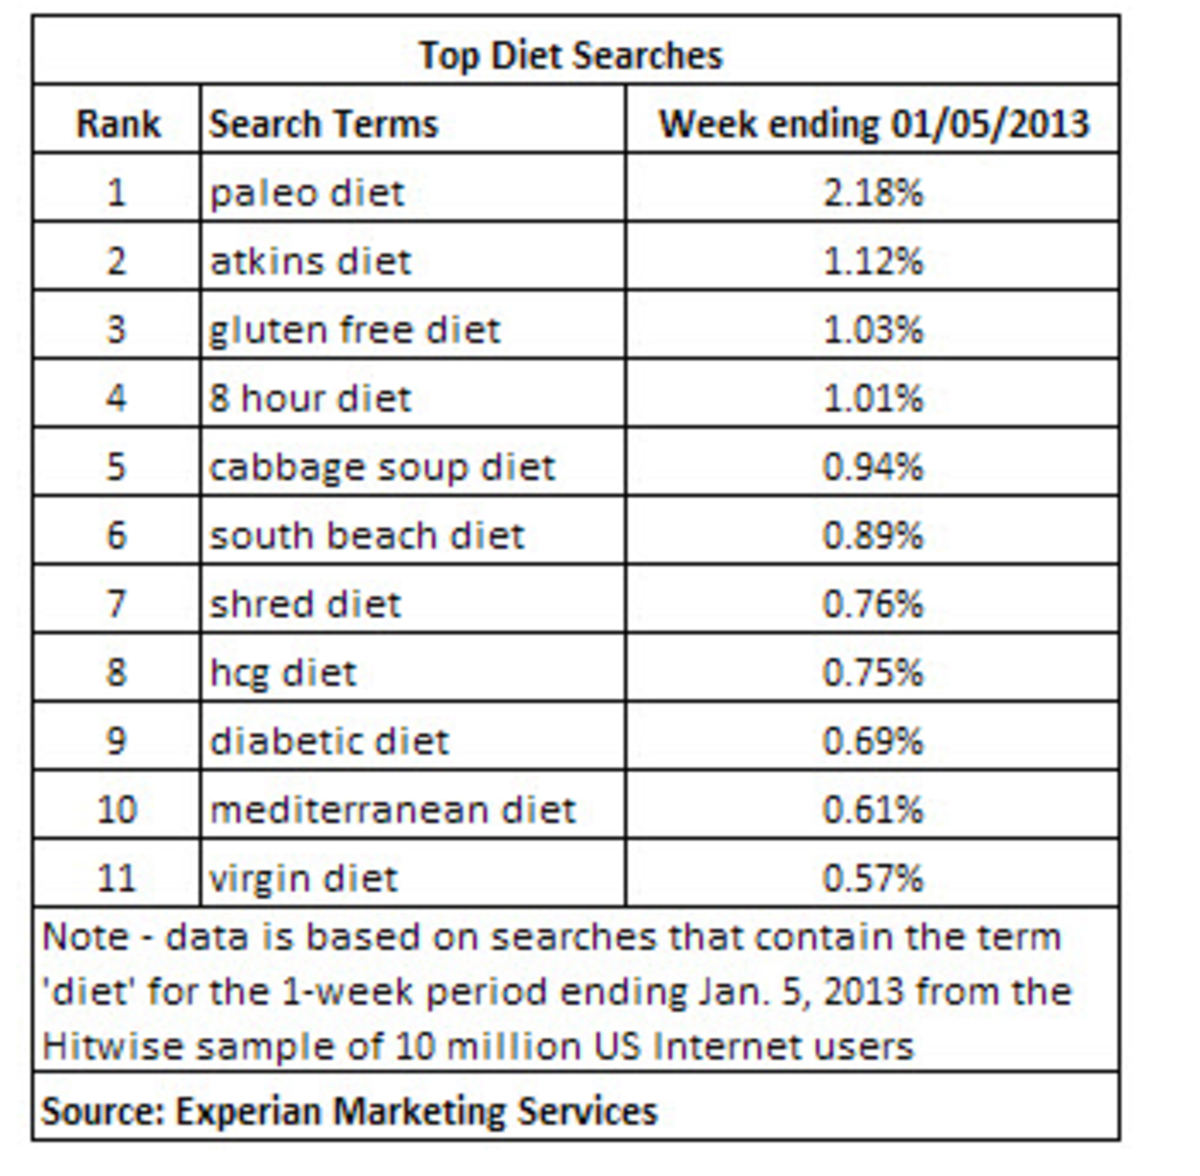 Top Diet Searches